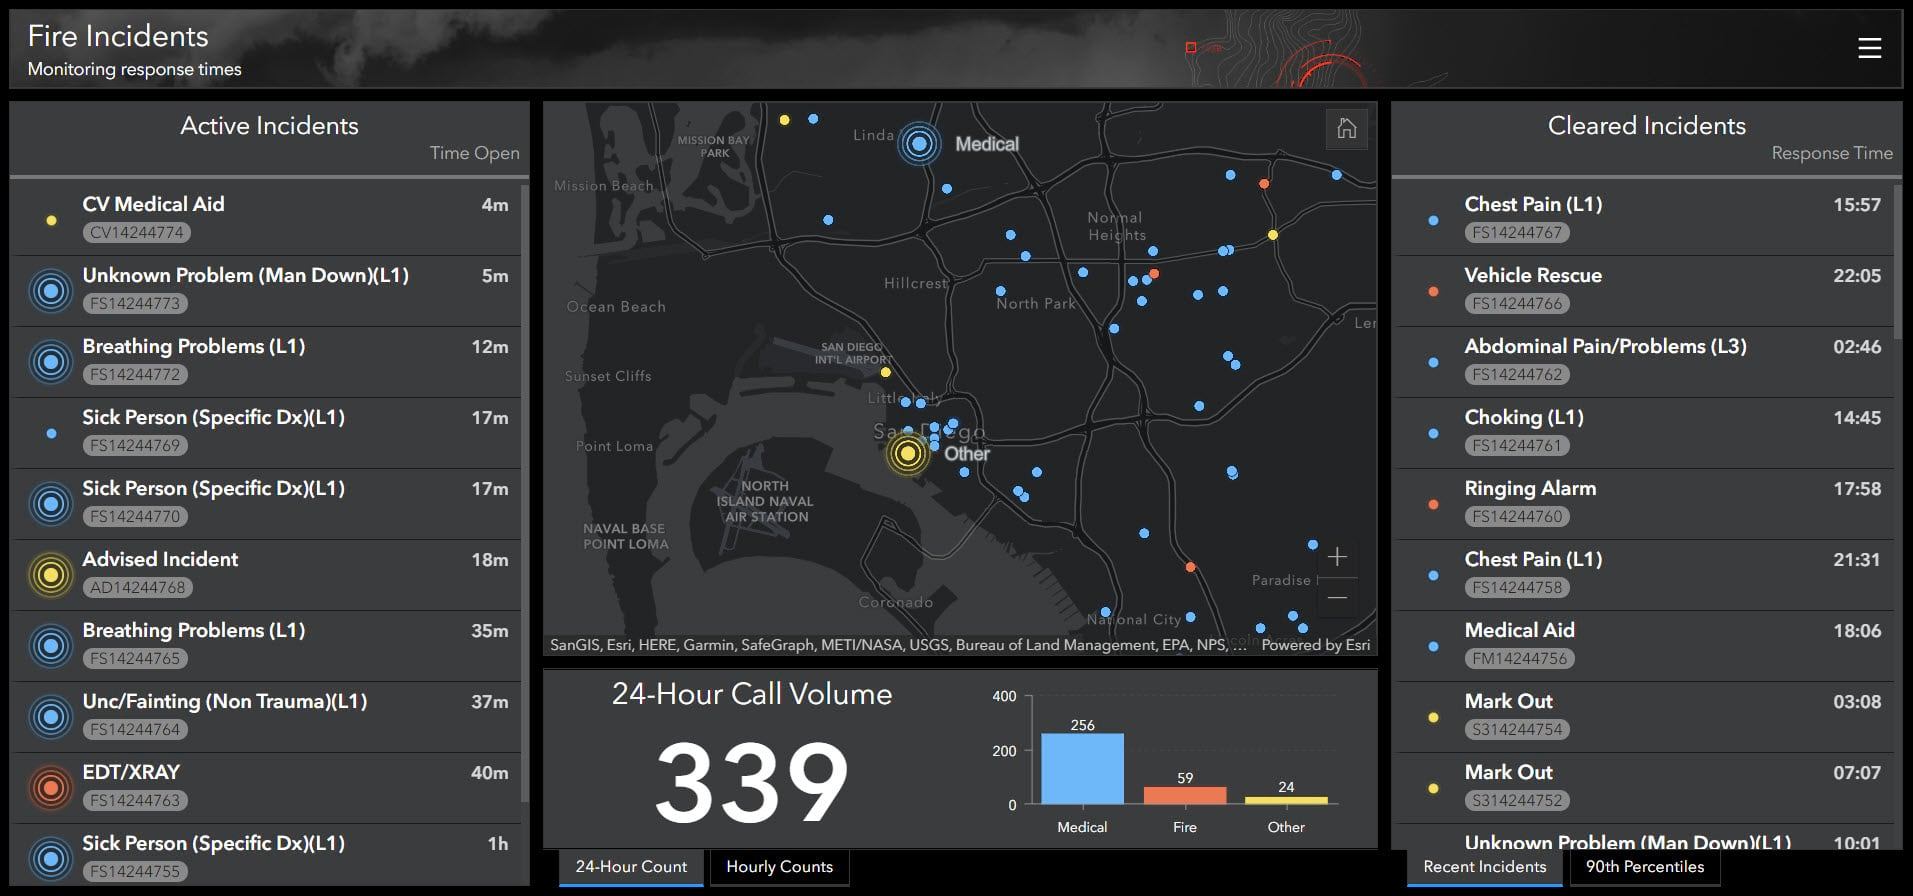 Fire incidents dashboard